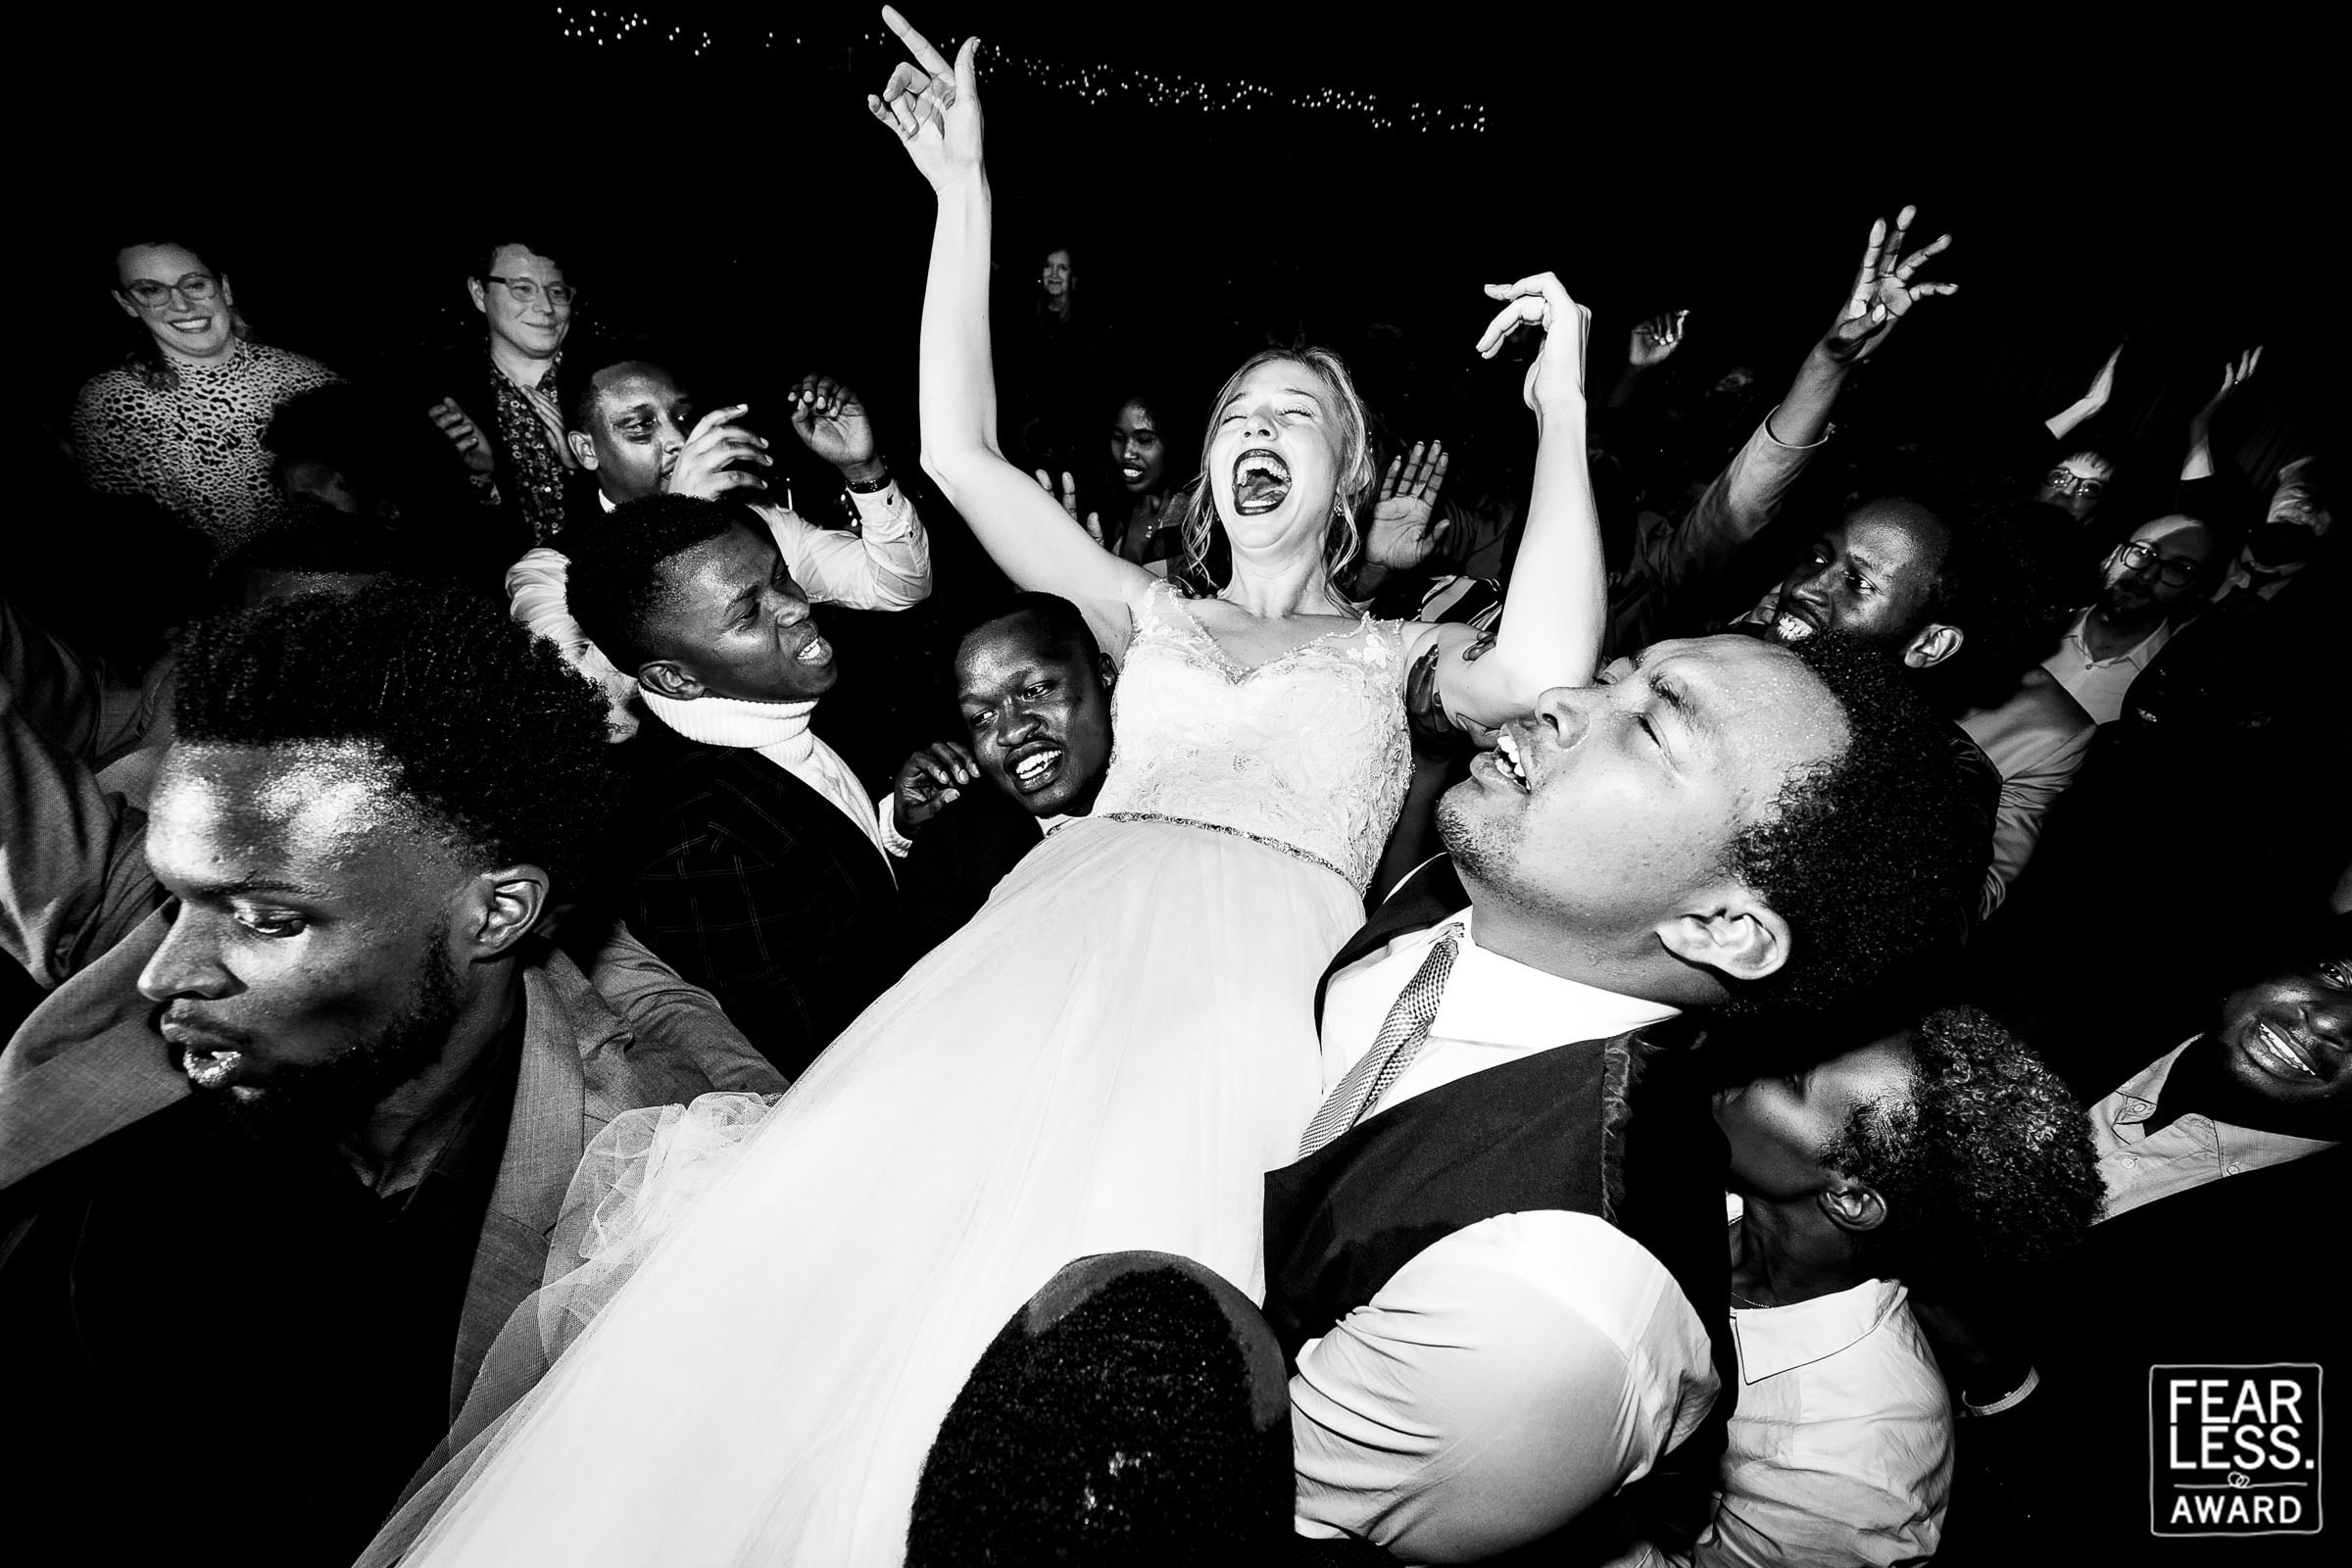 Fearless Photographers Award winning photo of a bride being held up by family and friends during their dance party at their Timberline Lodge wedding on Mt Hood in Oregon